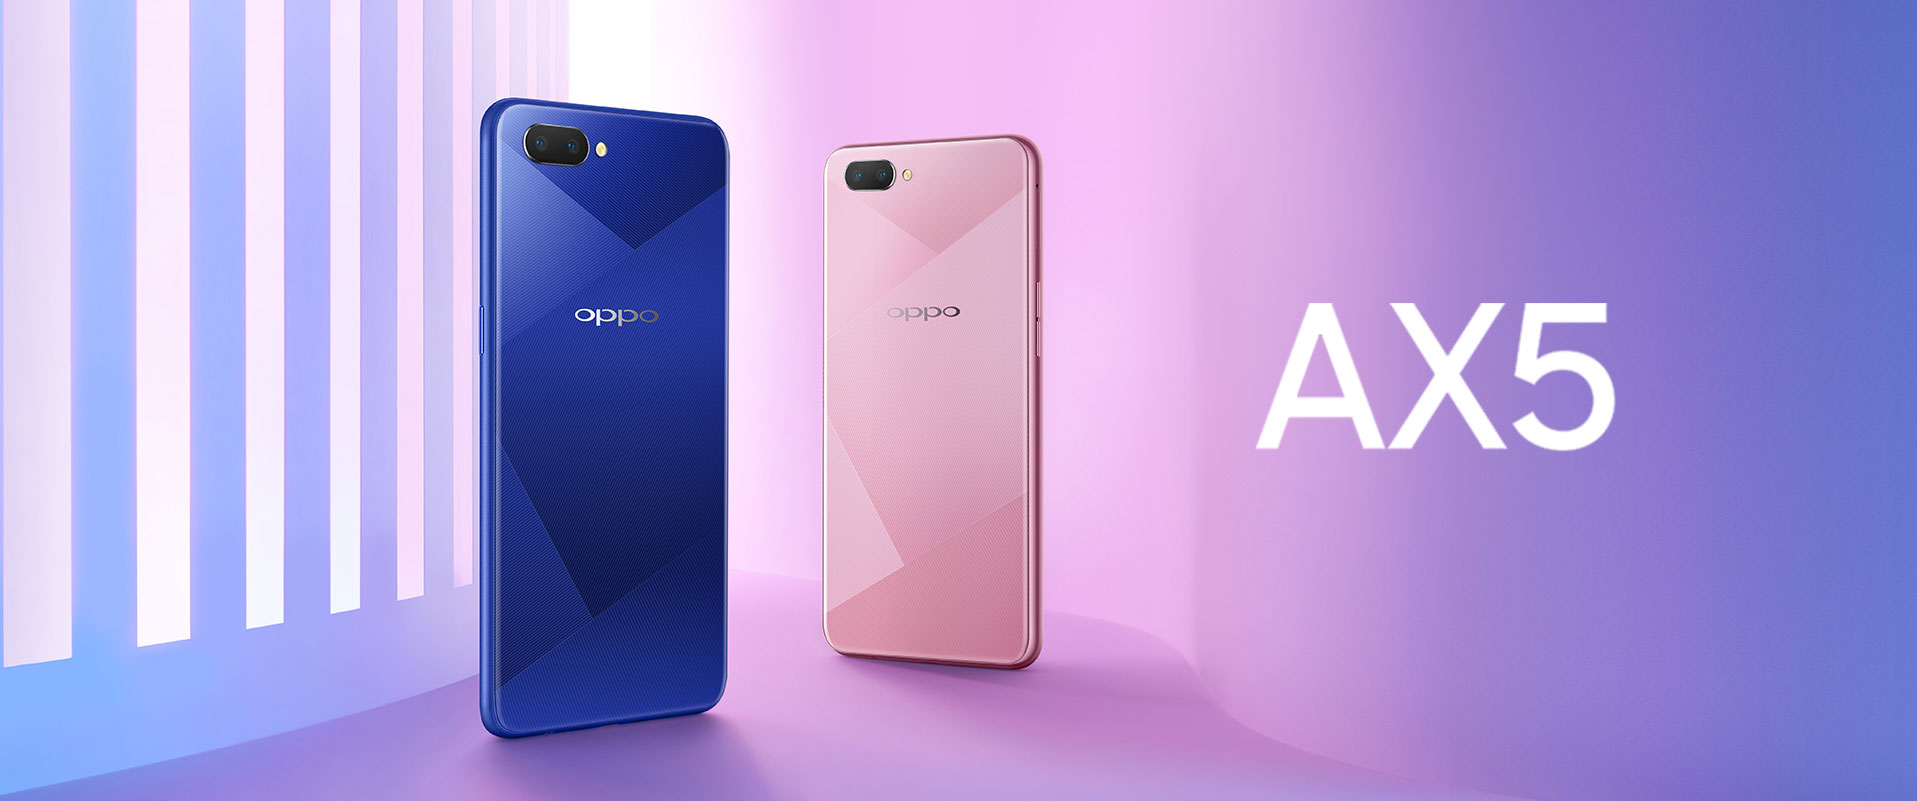 OPPO Mobile for Smartphones & Accessories - OPPO New ...